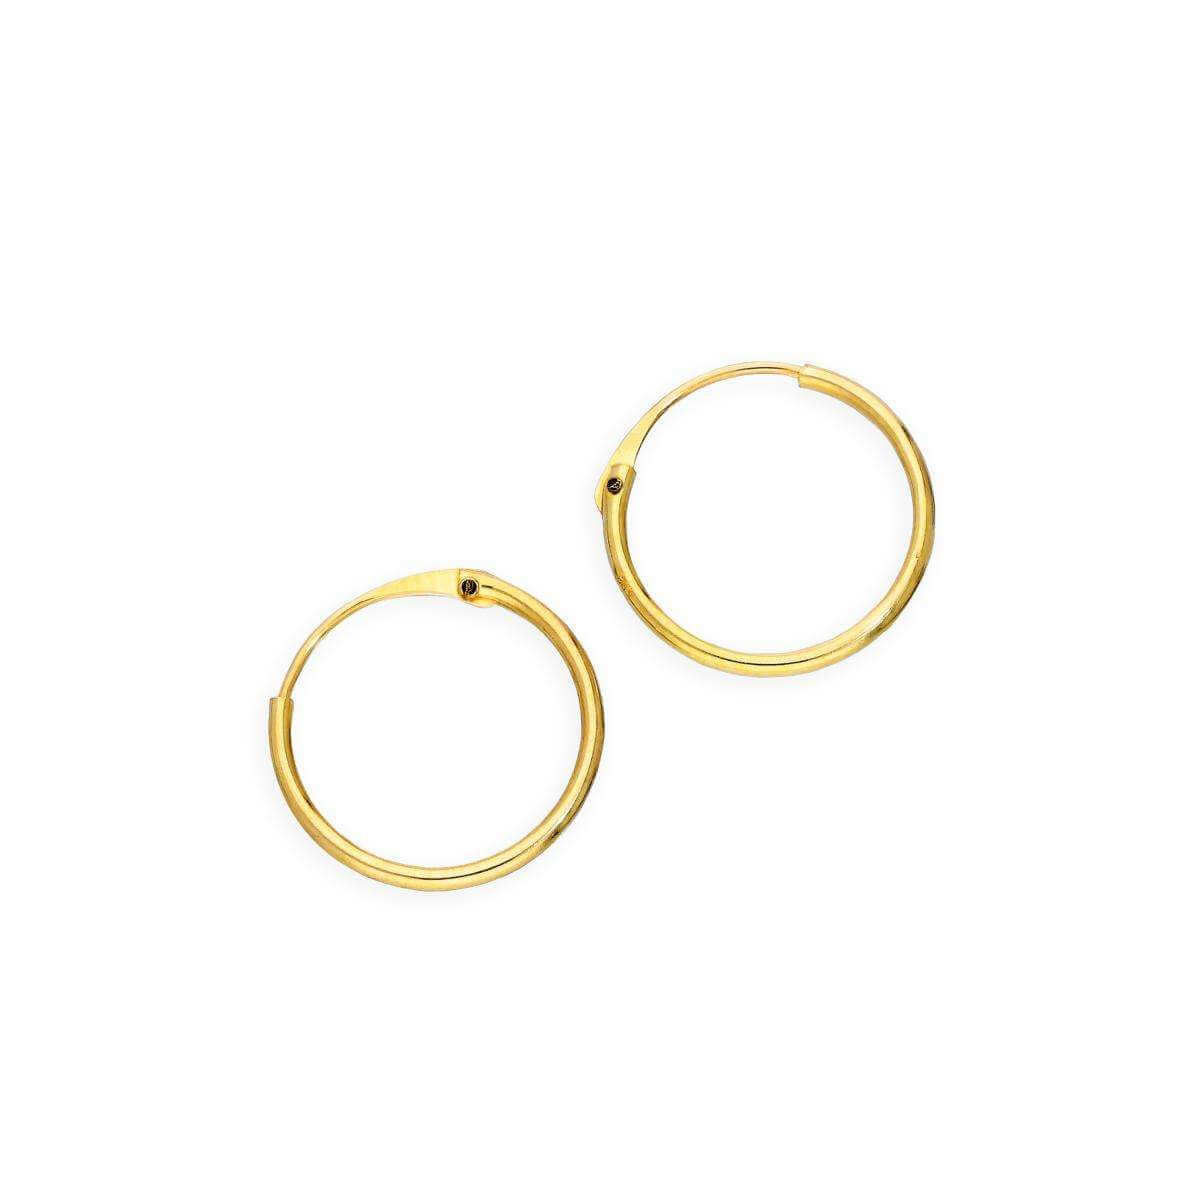 9ct Gold 0.8mm Tube Hoop Earrings 10mm